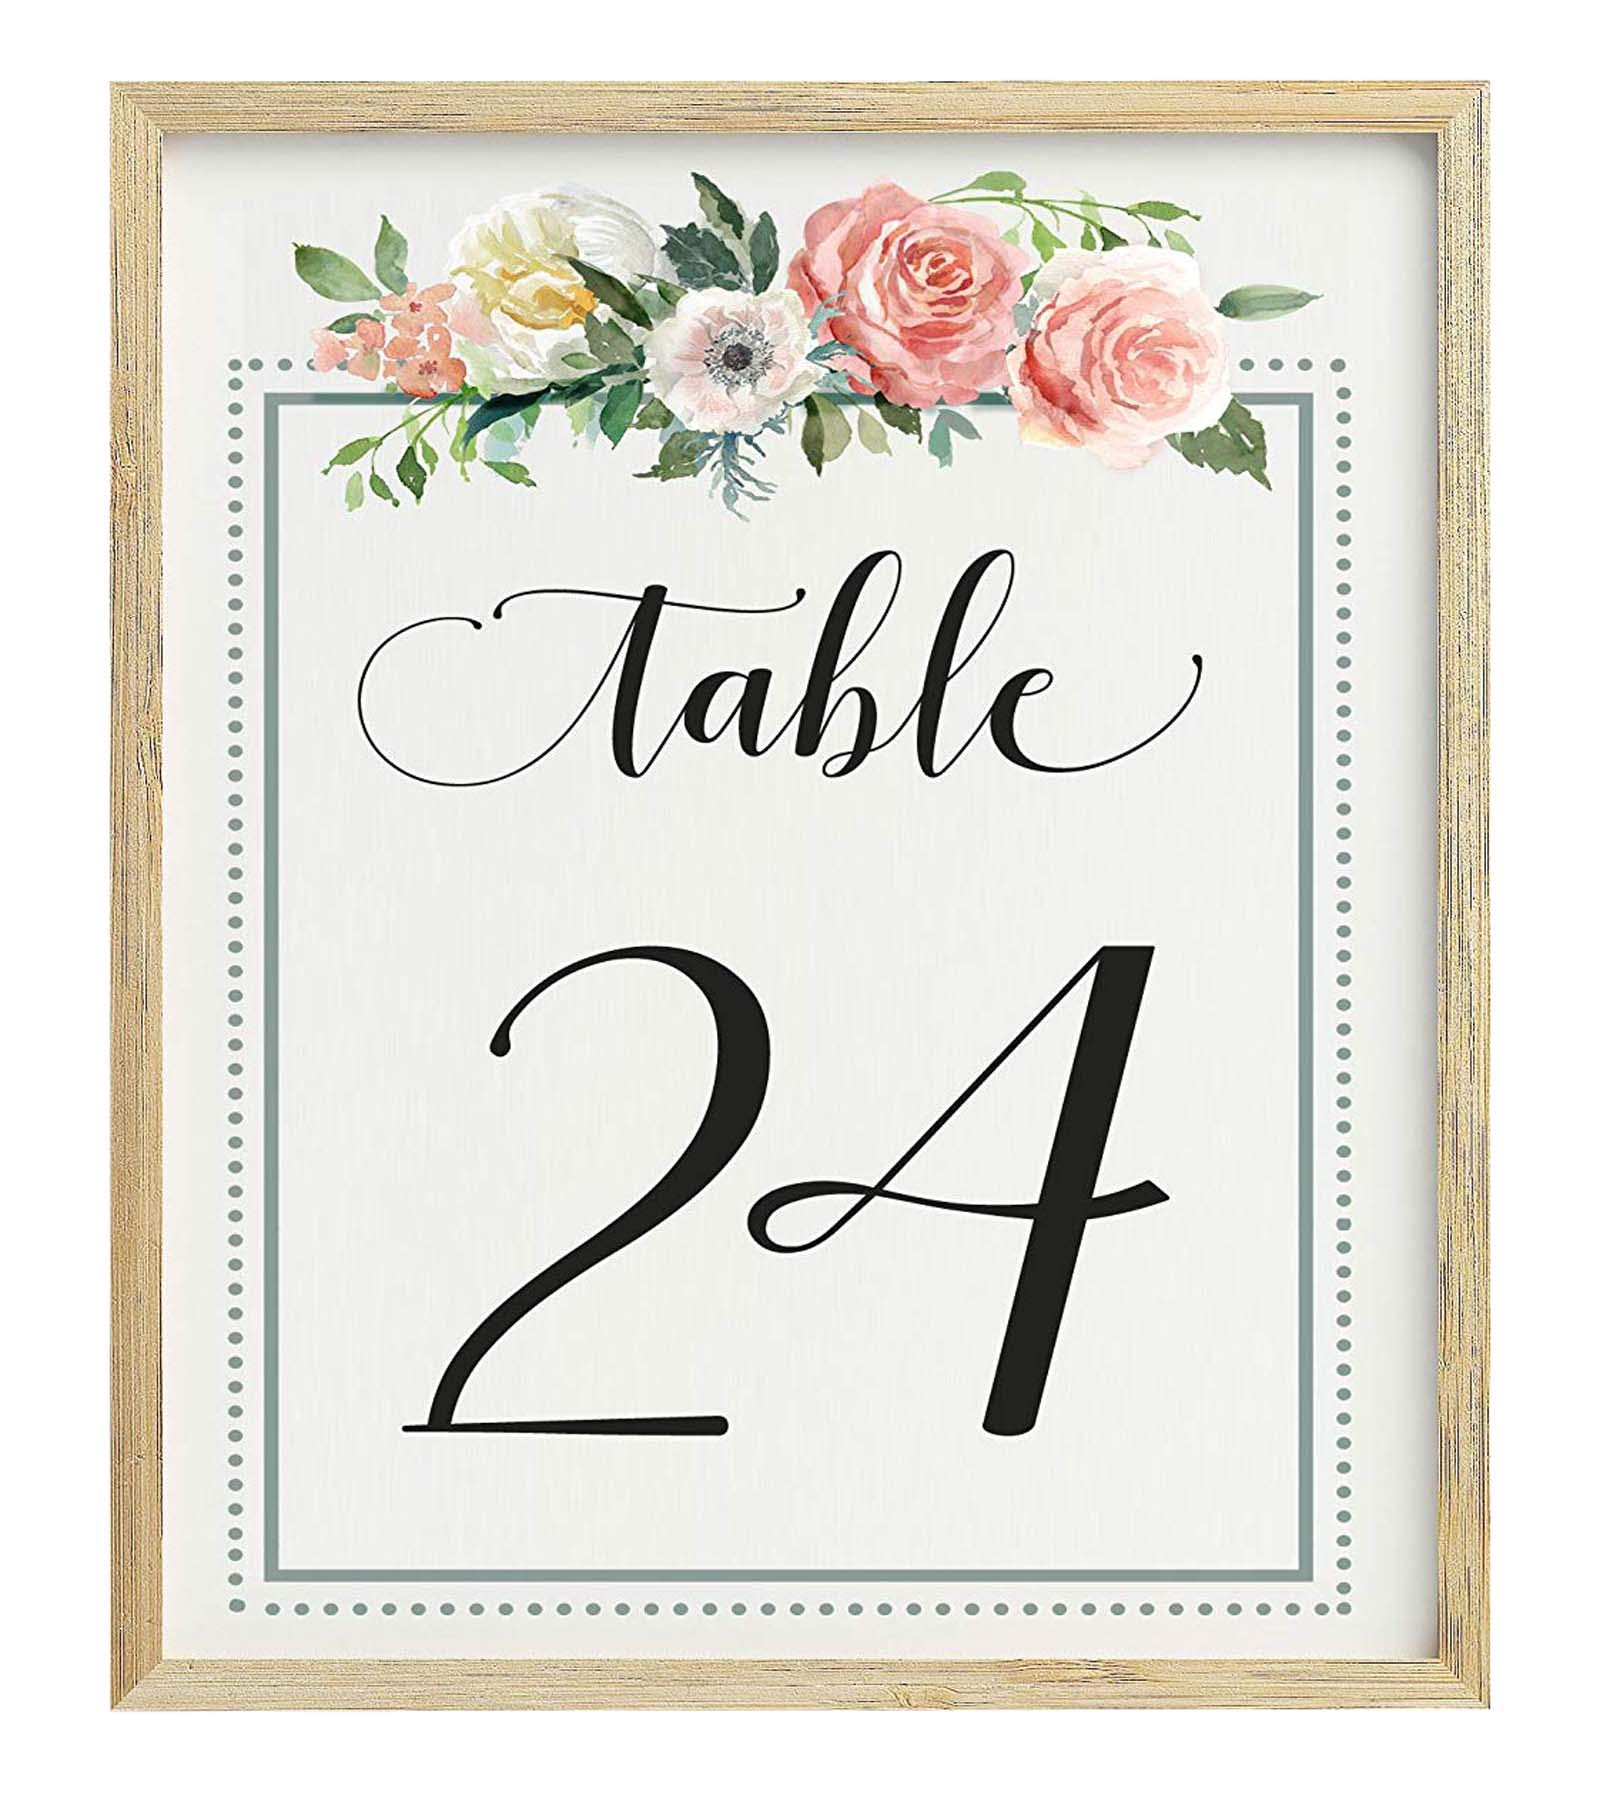 Darling Souvenir Calligraphy 1-50 Floral Table Numbers Wedding Reception Décor Table Cards (4x6 Inches) by Darling Souvenir